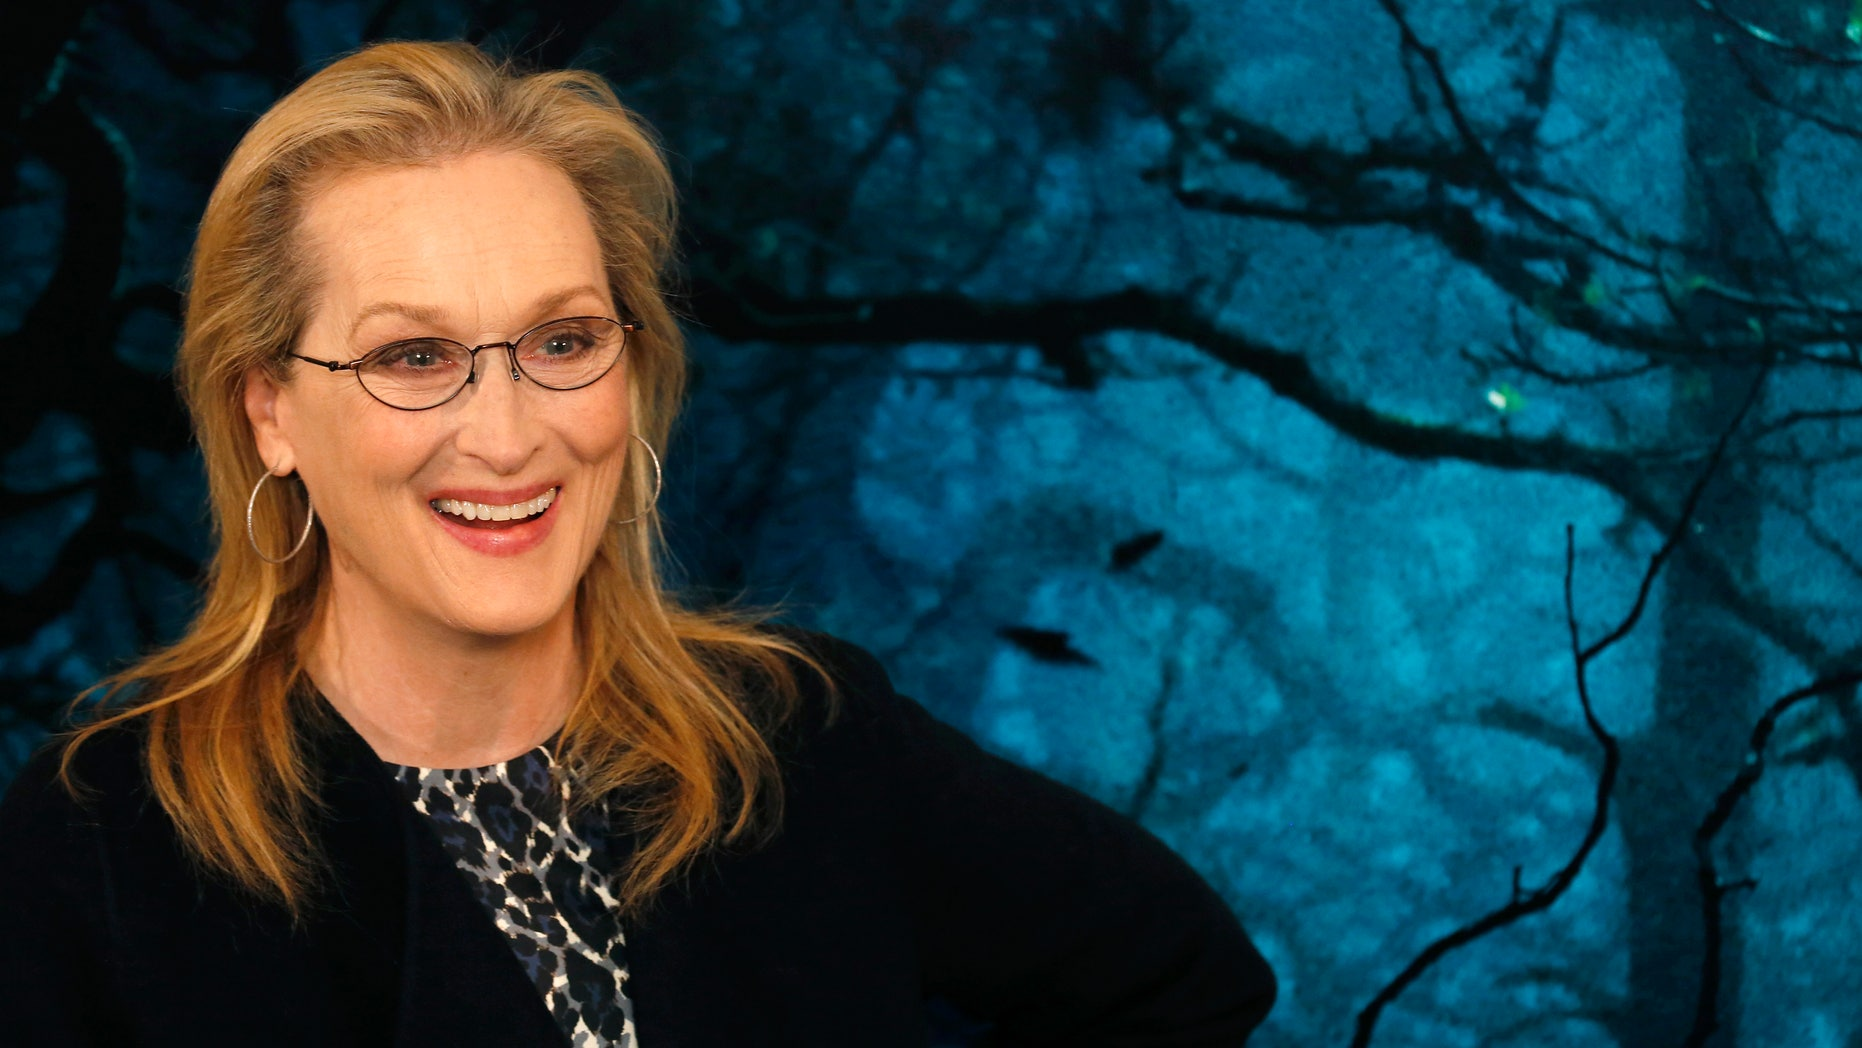 """January 7, 2015. Actress Meryl Streep poses during a media event for the film """"Into the Woods,"""" in London."""